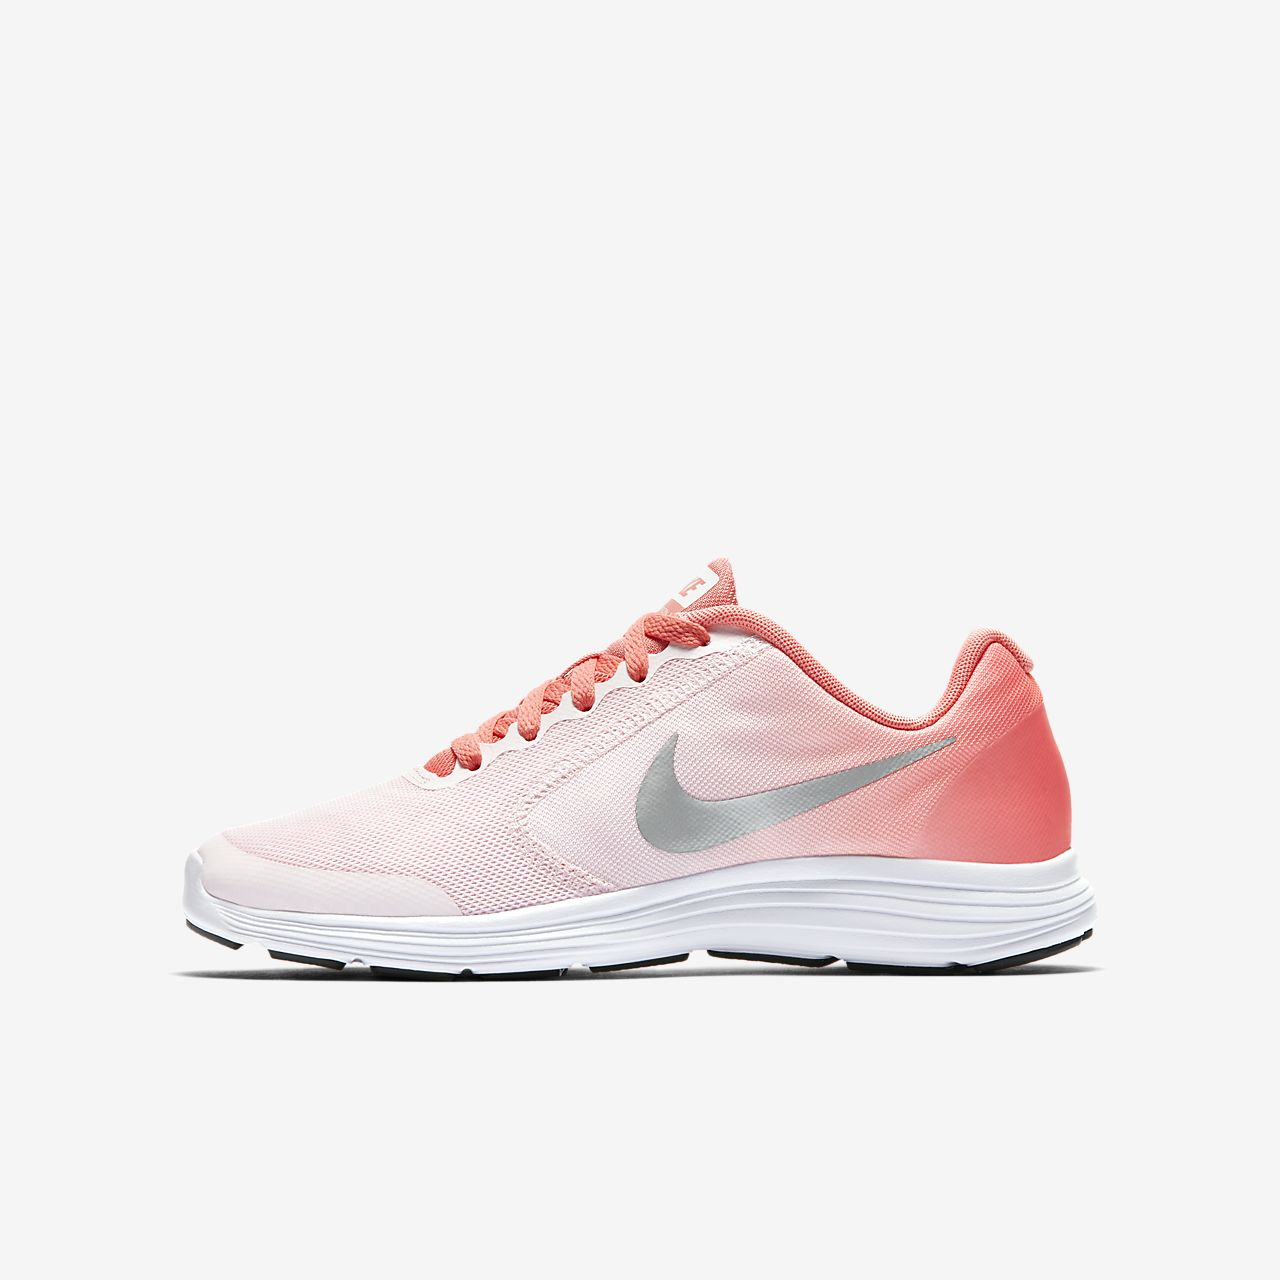 new arrival b3db1 91518 Nike Revolution 3 Zapatillas de running - Niñoa